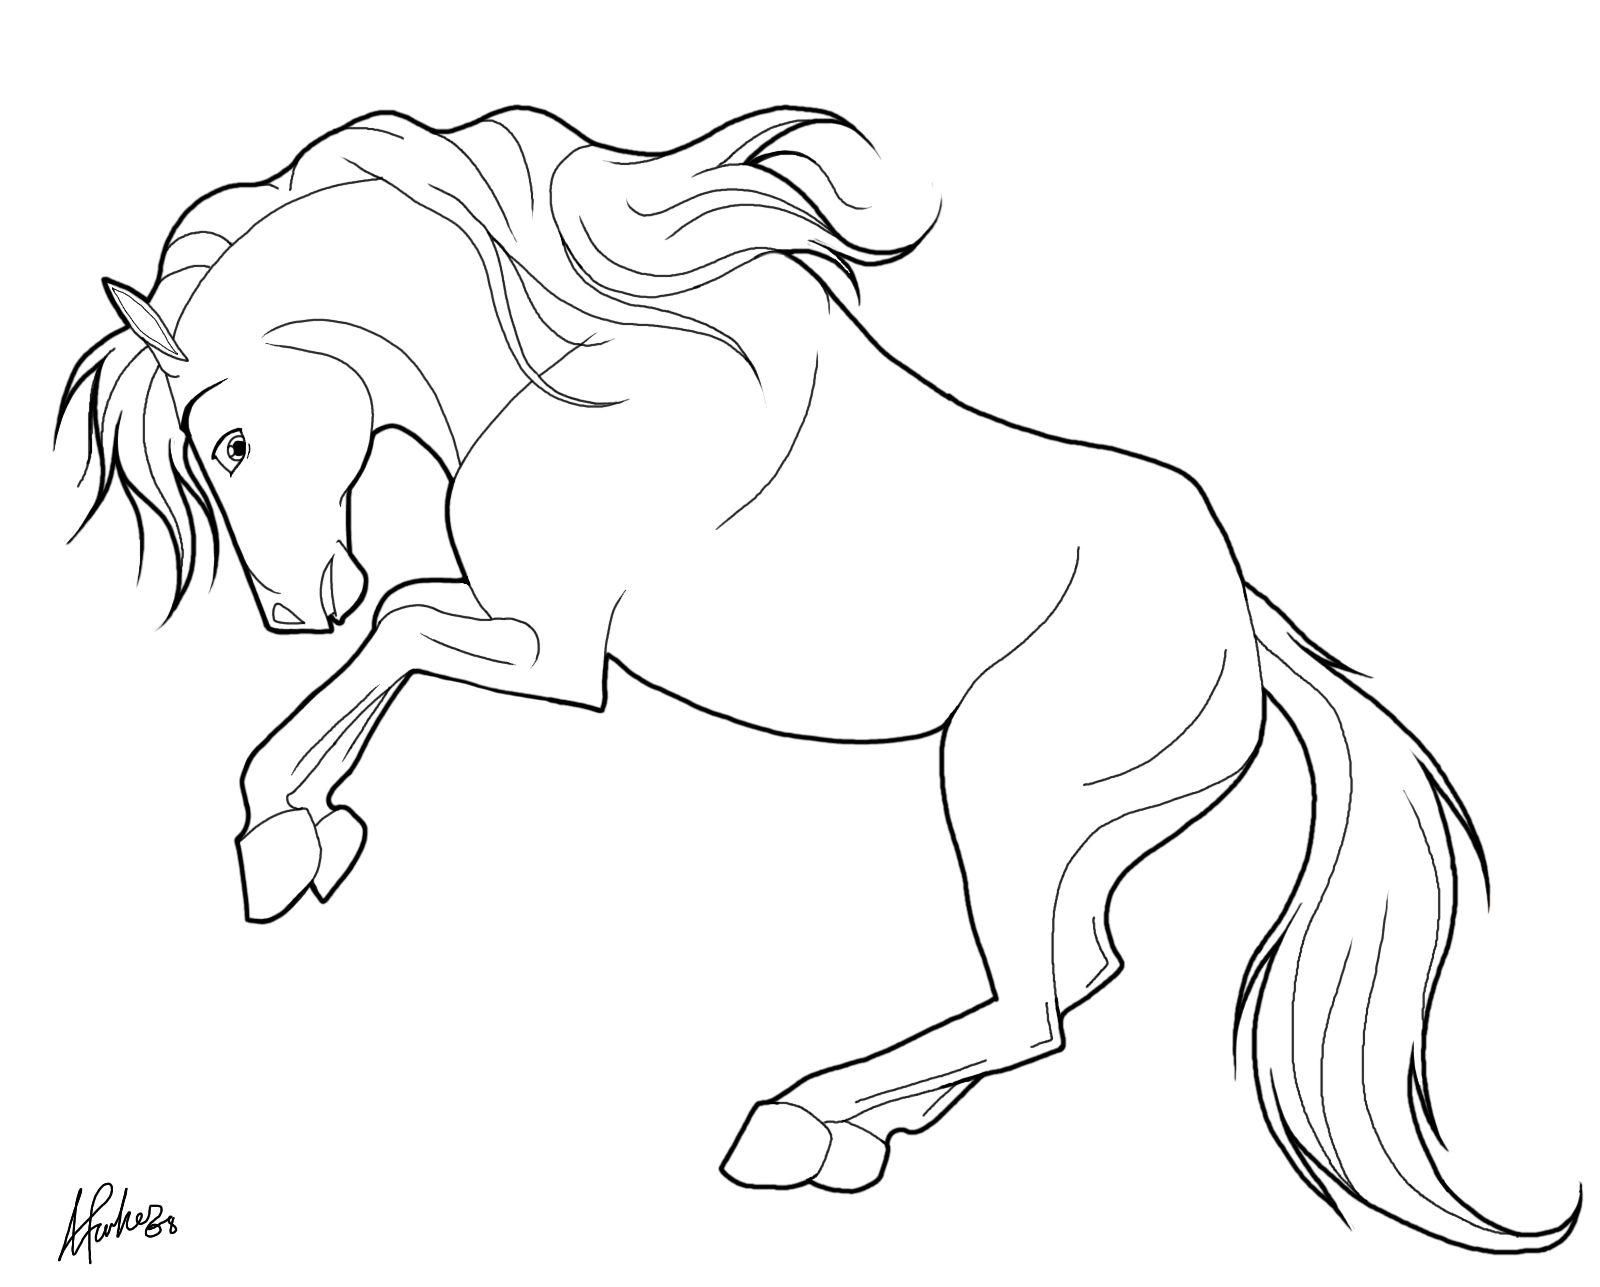 Coloriage Cheval Cavalier furthermore Halloween Coloring Pages Chibi Food Sketch Templates likewise Paard furthermore Horse Clip Art Black And White also 5wx4t 1998 Ford E350 7 3 Liter Disel Engine Keeps Blown. on super cat mustang